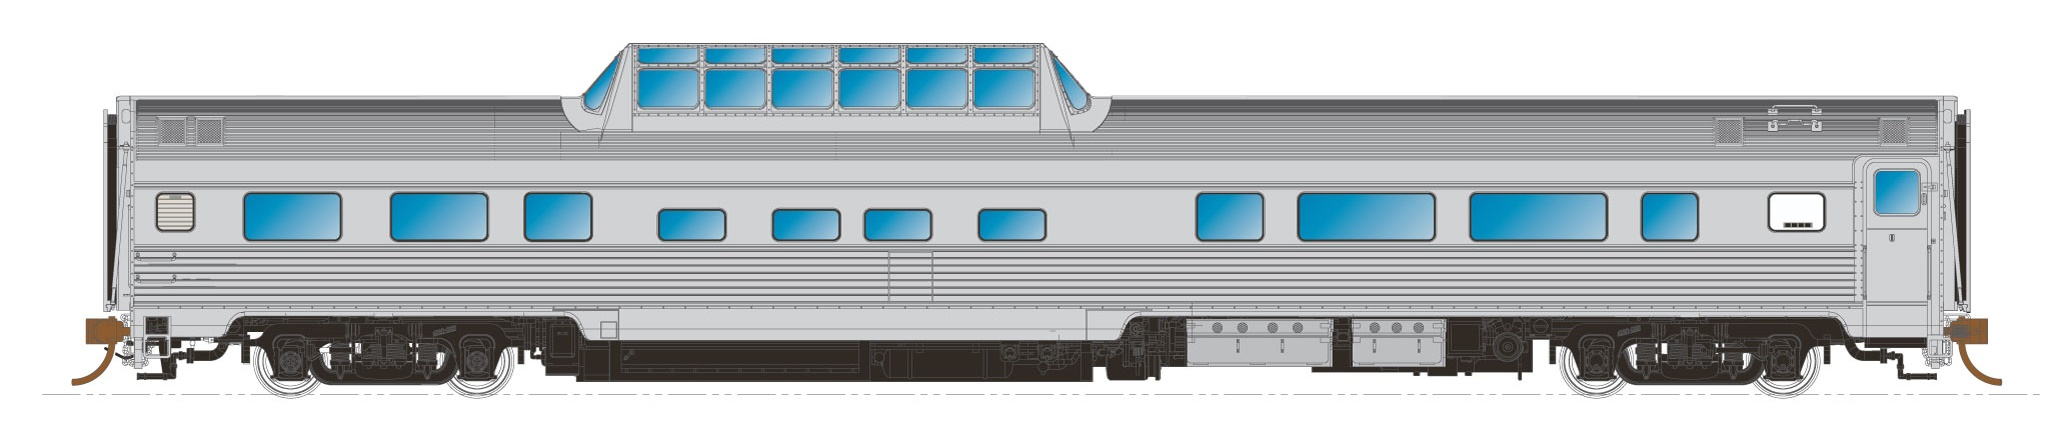 N Scale - Rapido Trains - 550114 - Passenger Car, Budd, Lightweight Coach - Undecorated